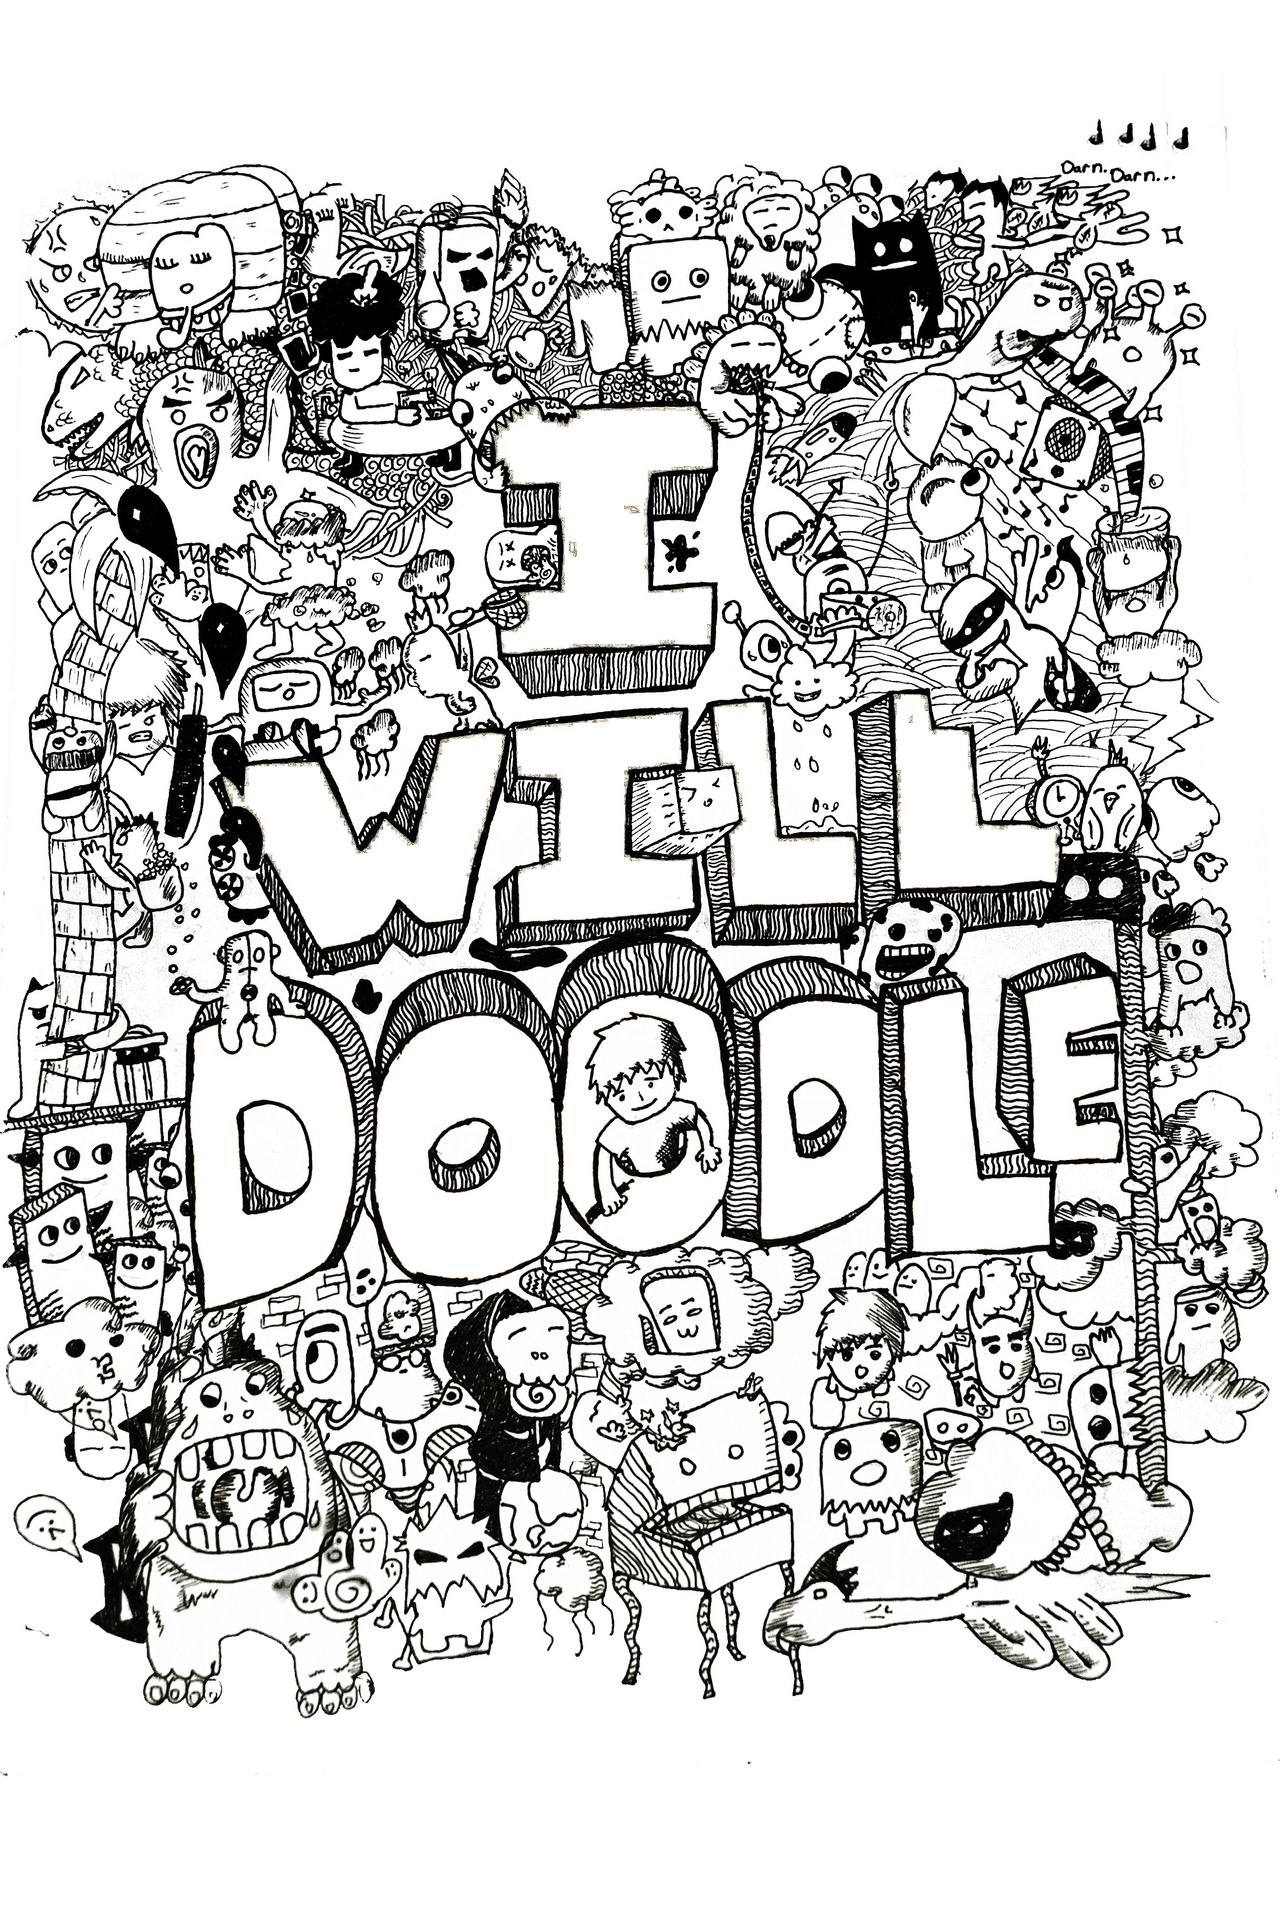 The indie coloring book - Doodle Invasion Coloring Book